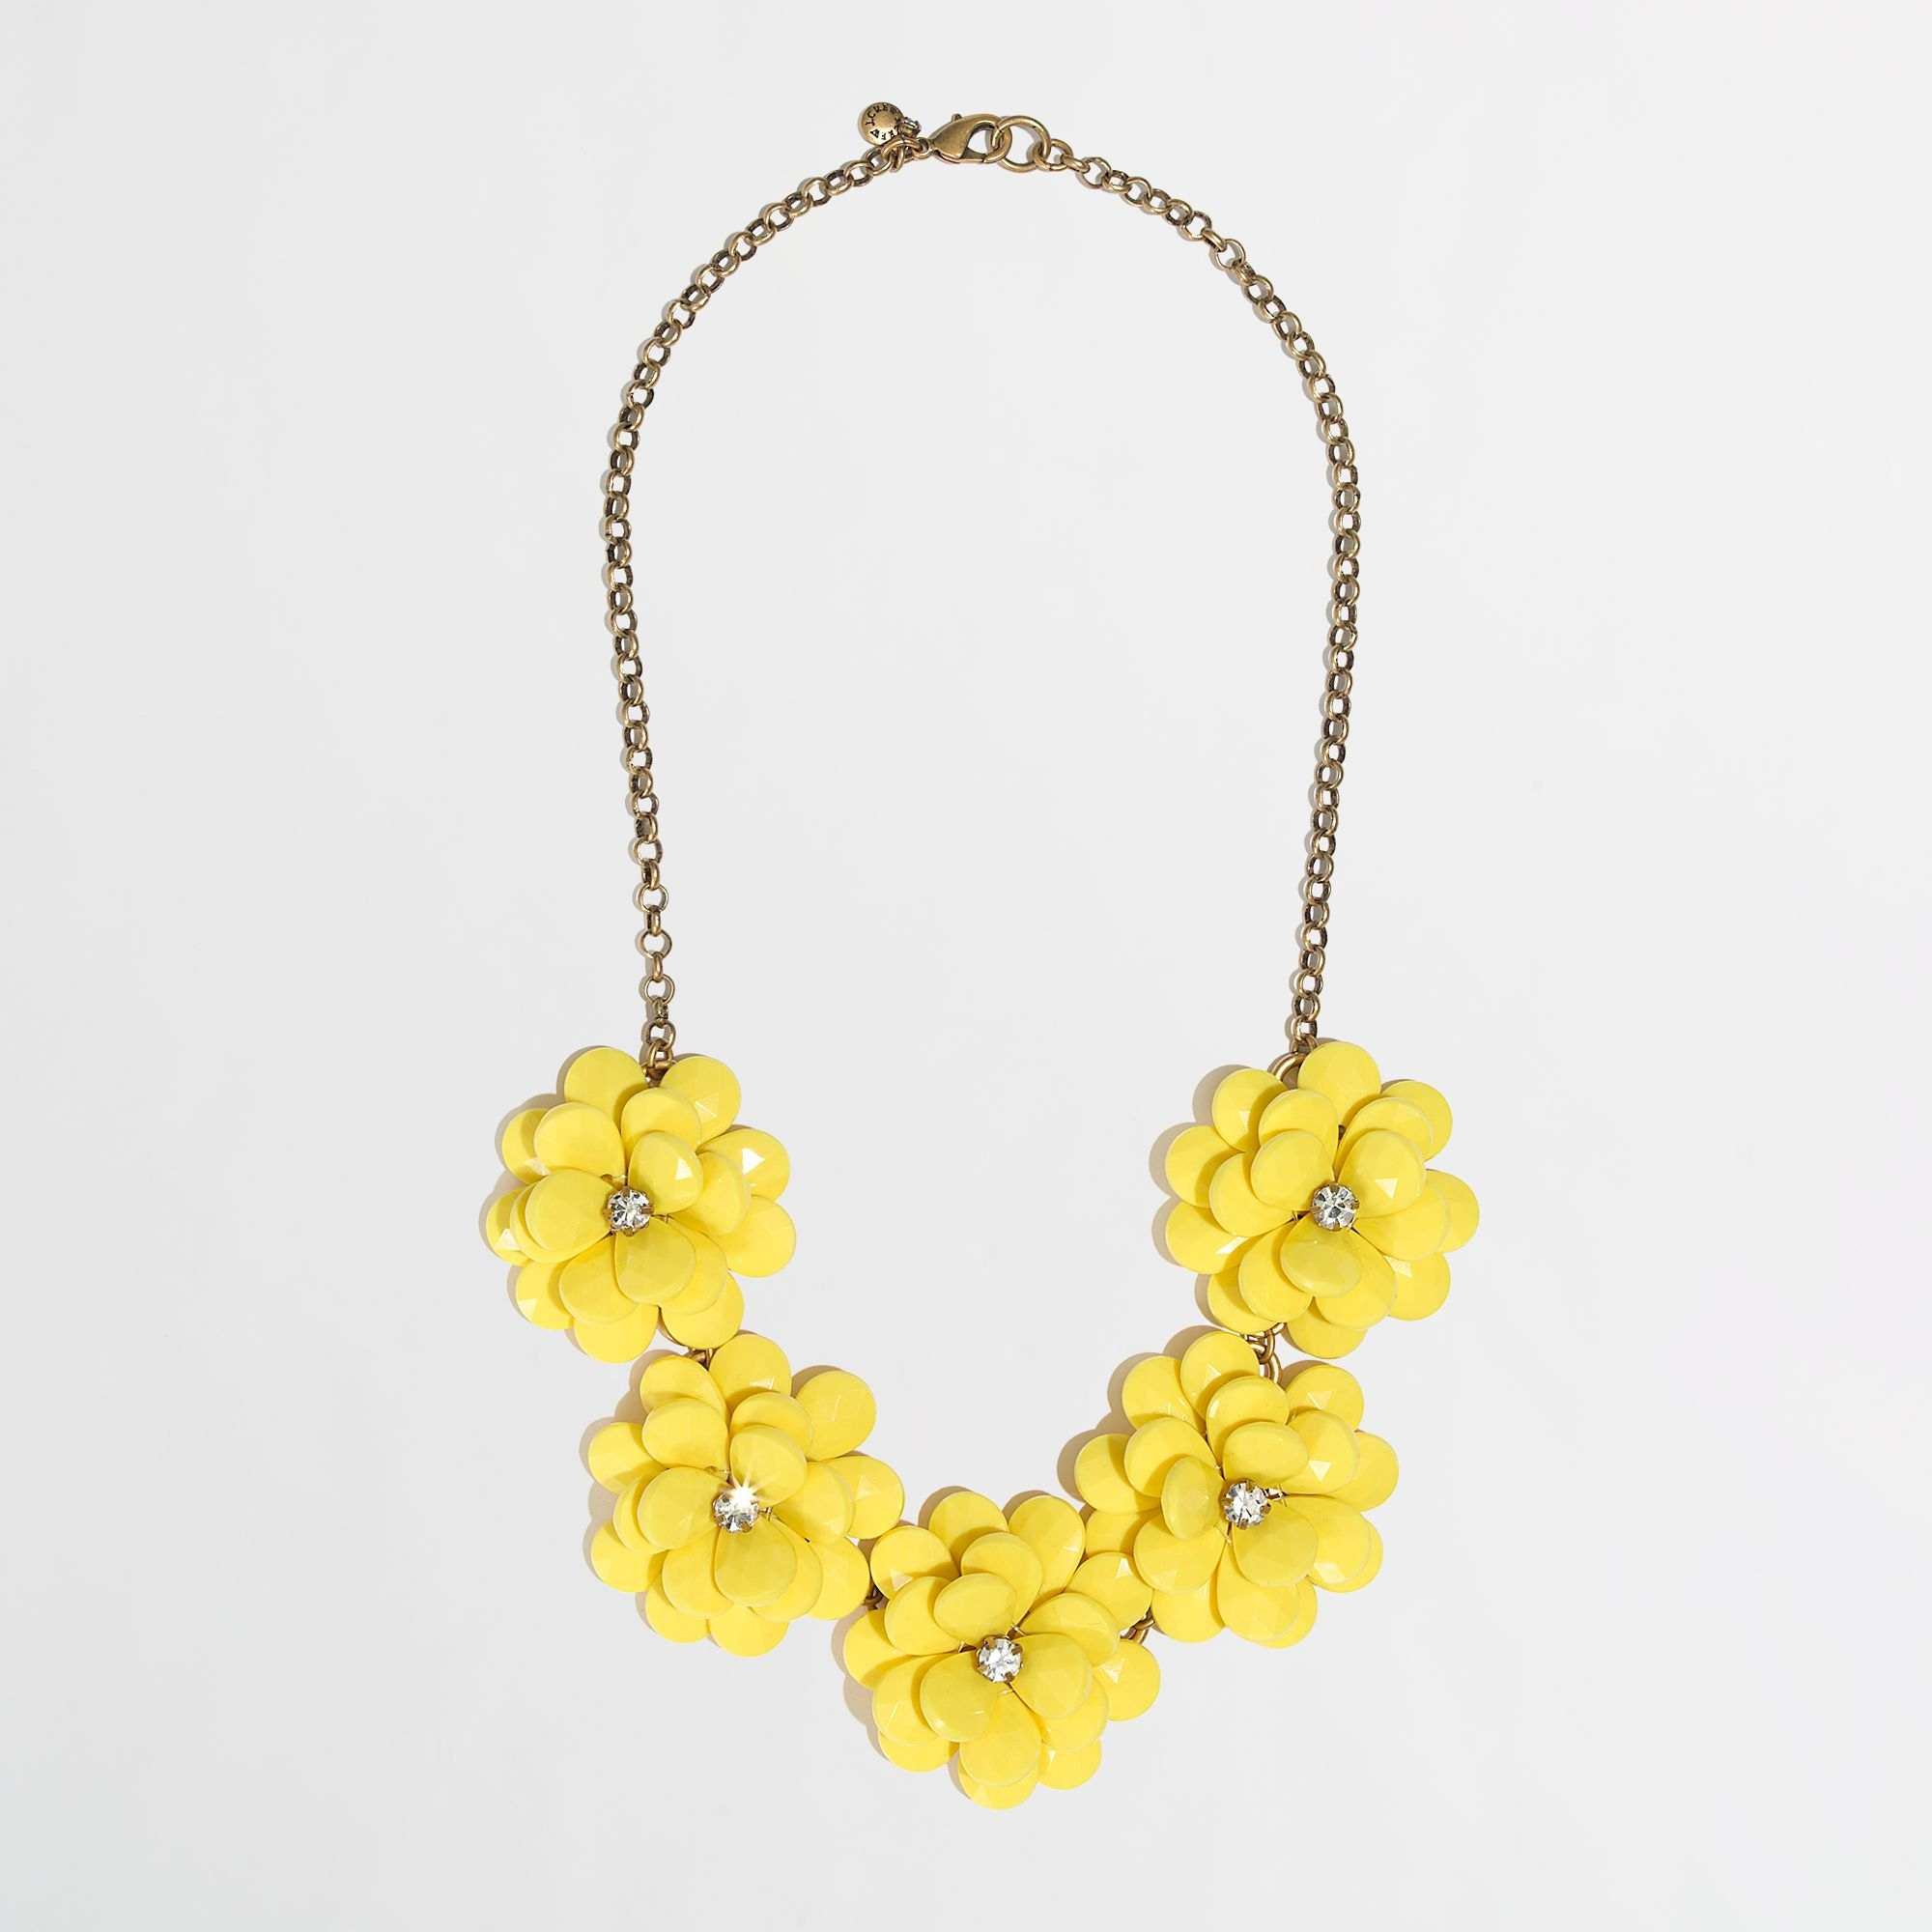 db3ad3bbd93744 J.Crew Factory Crystal Floral Burst Necklace in Yellow - Lyst